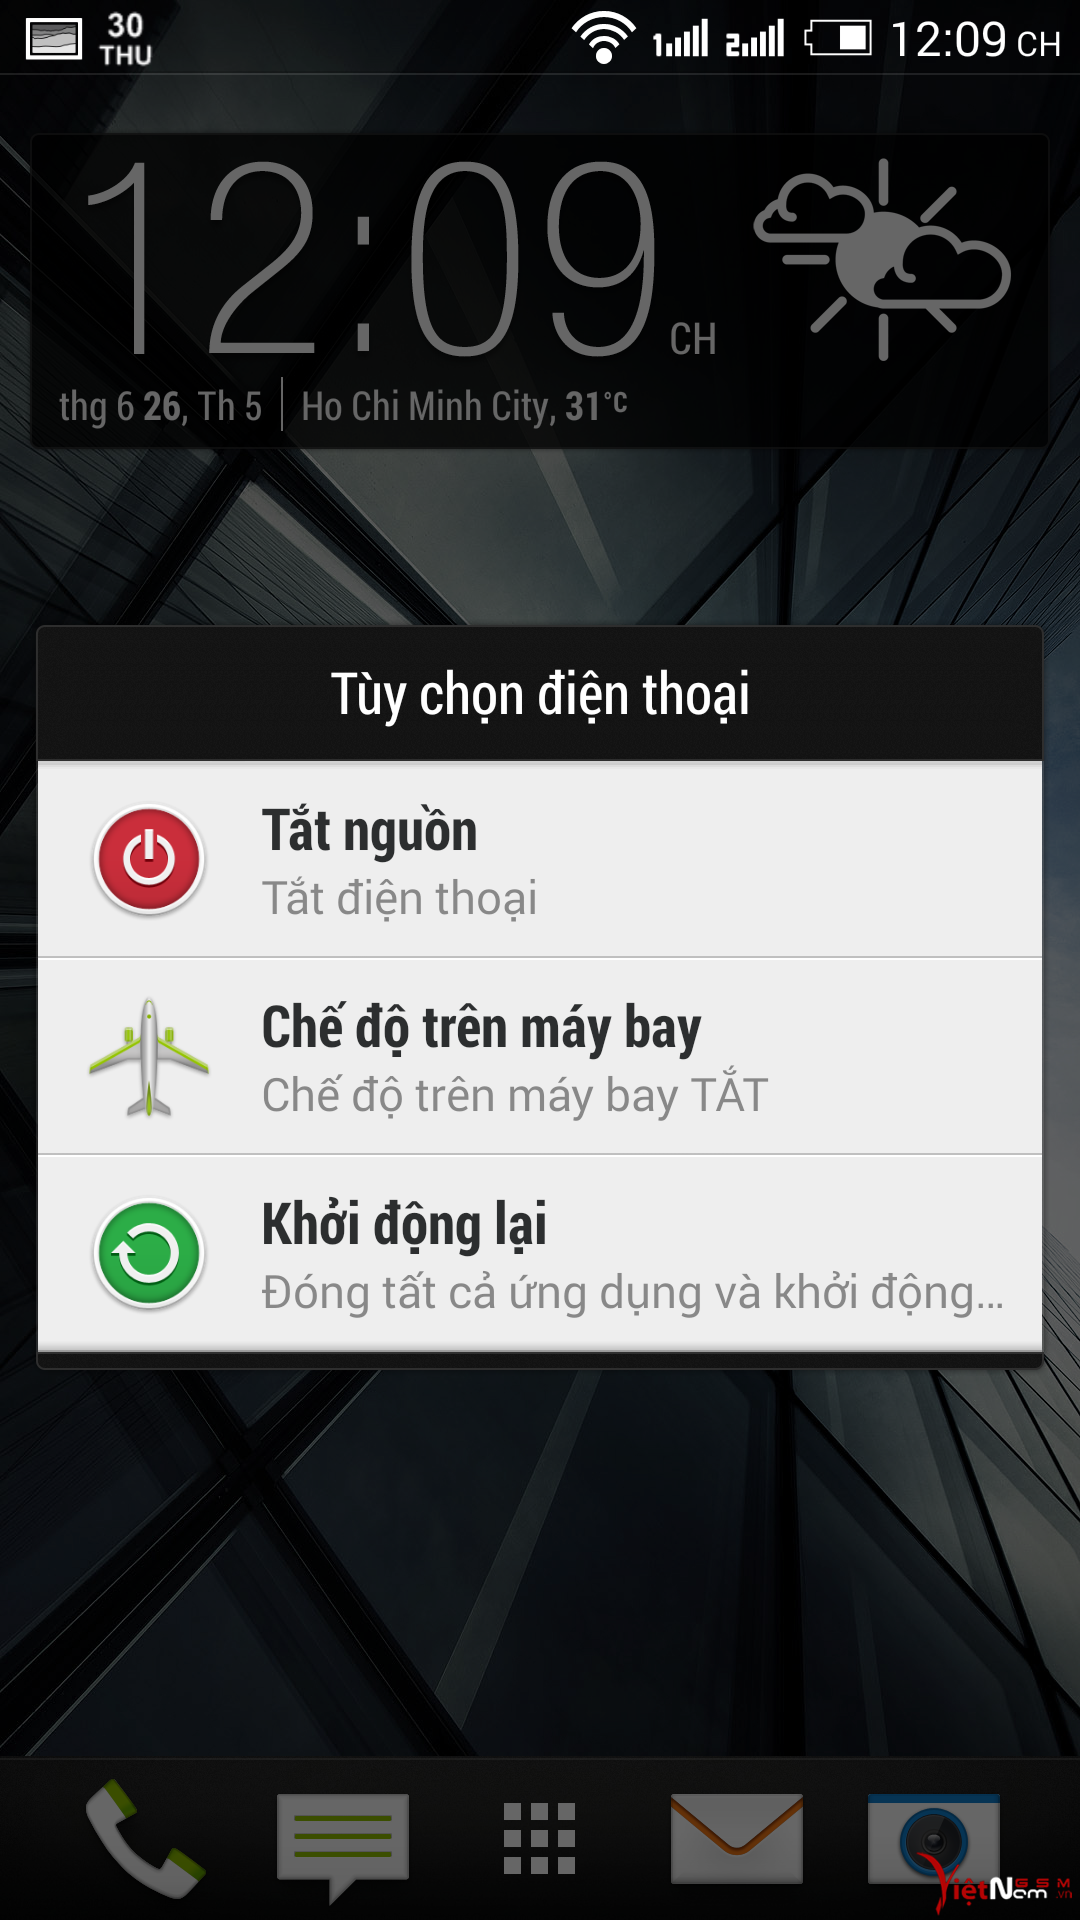 Screenshot_2014-06-26-12-09-31.png